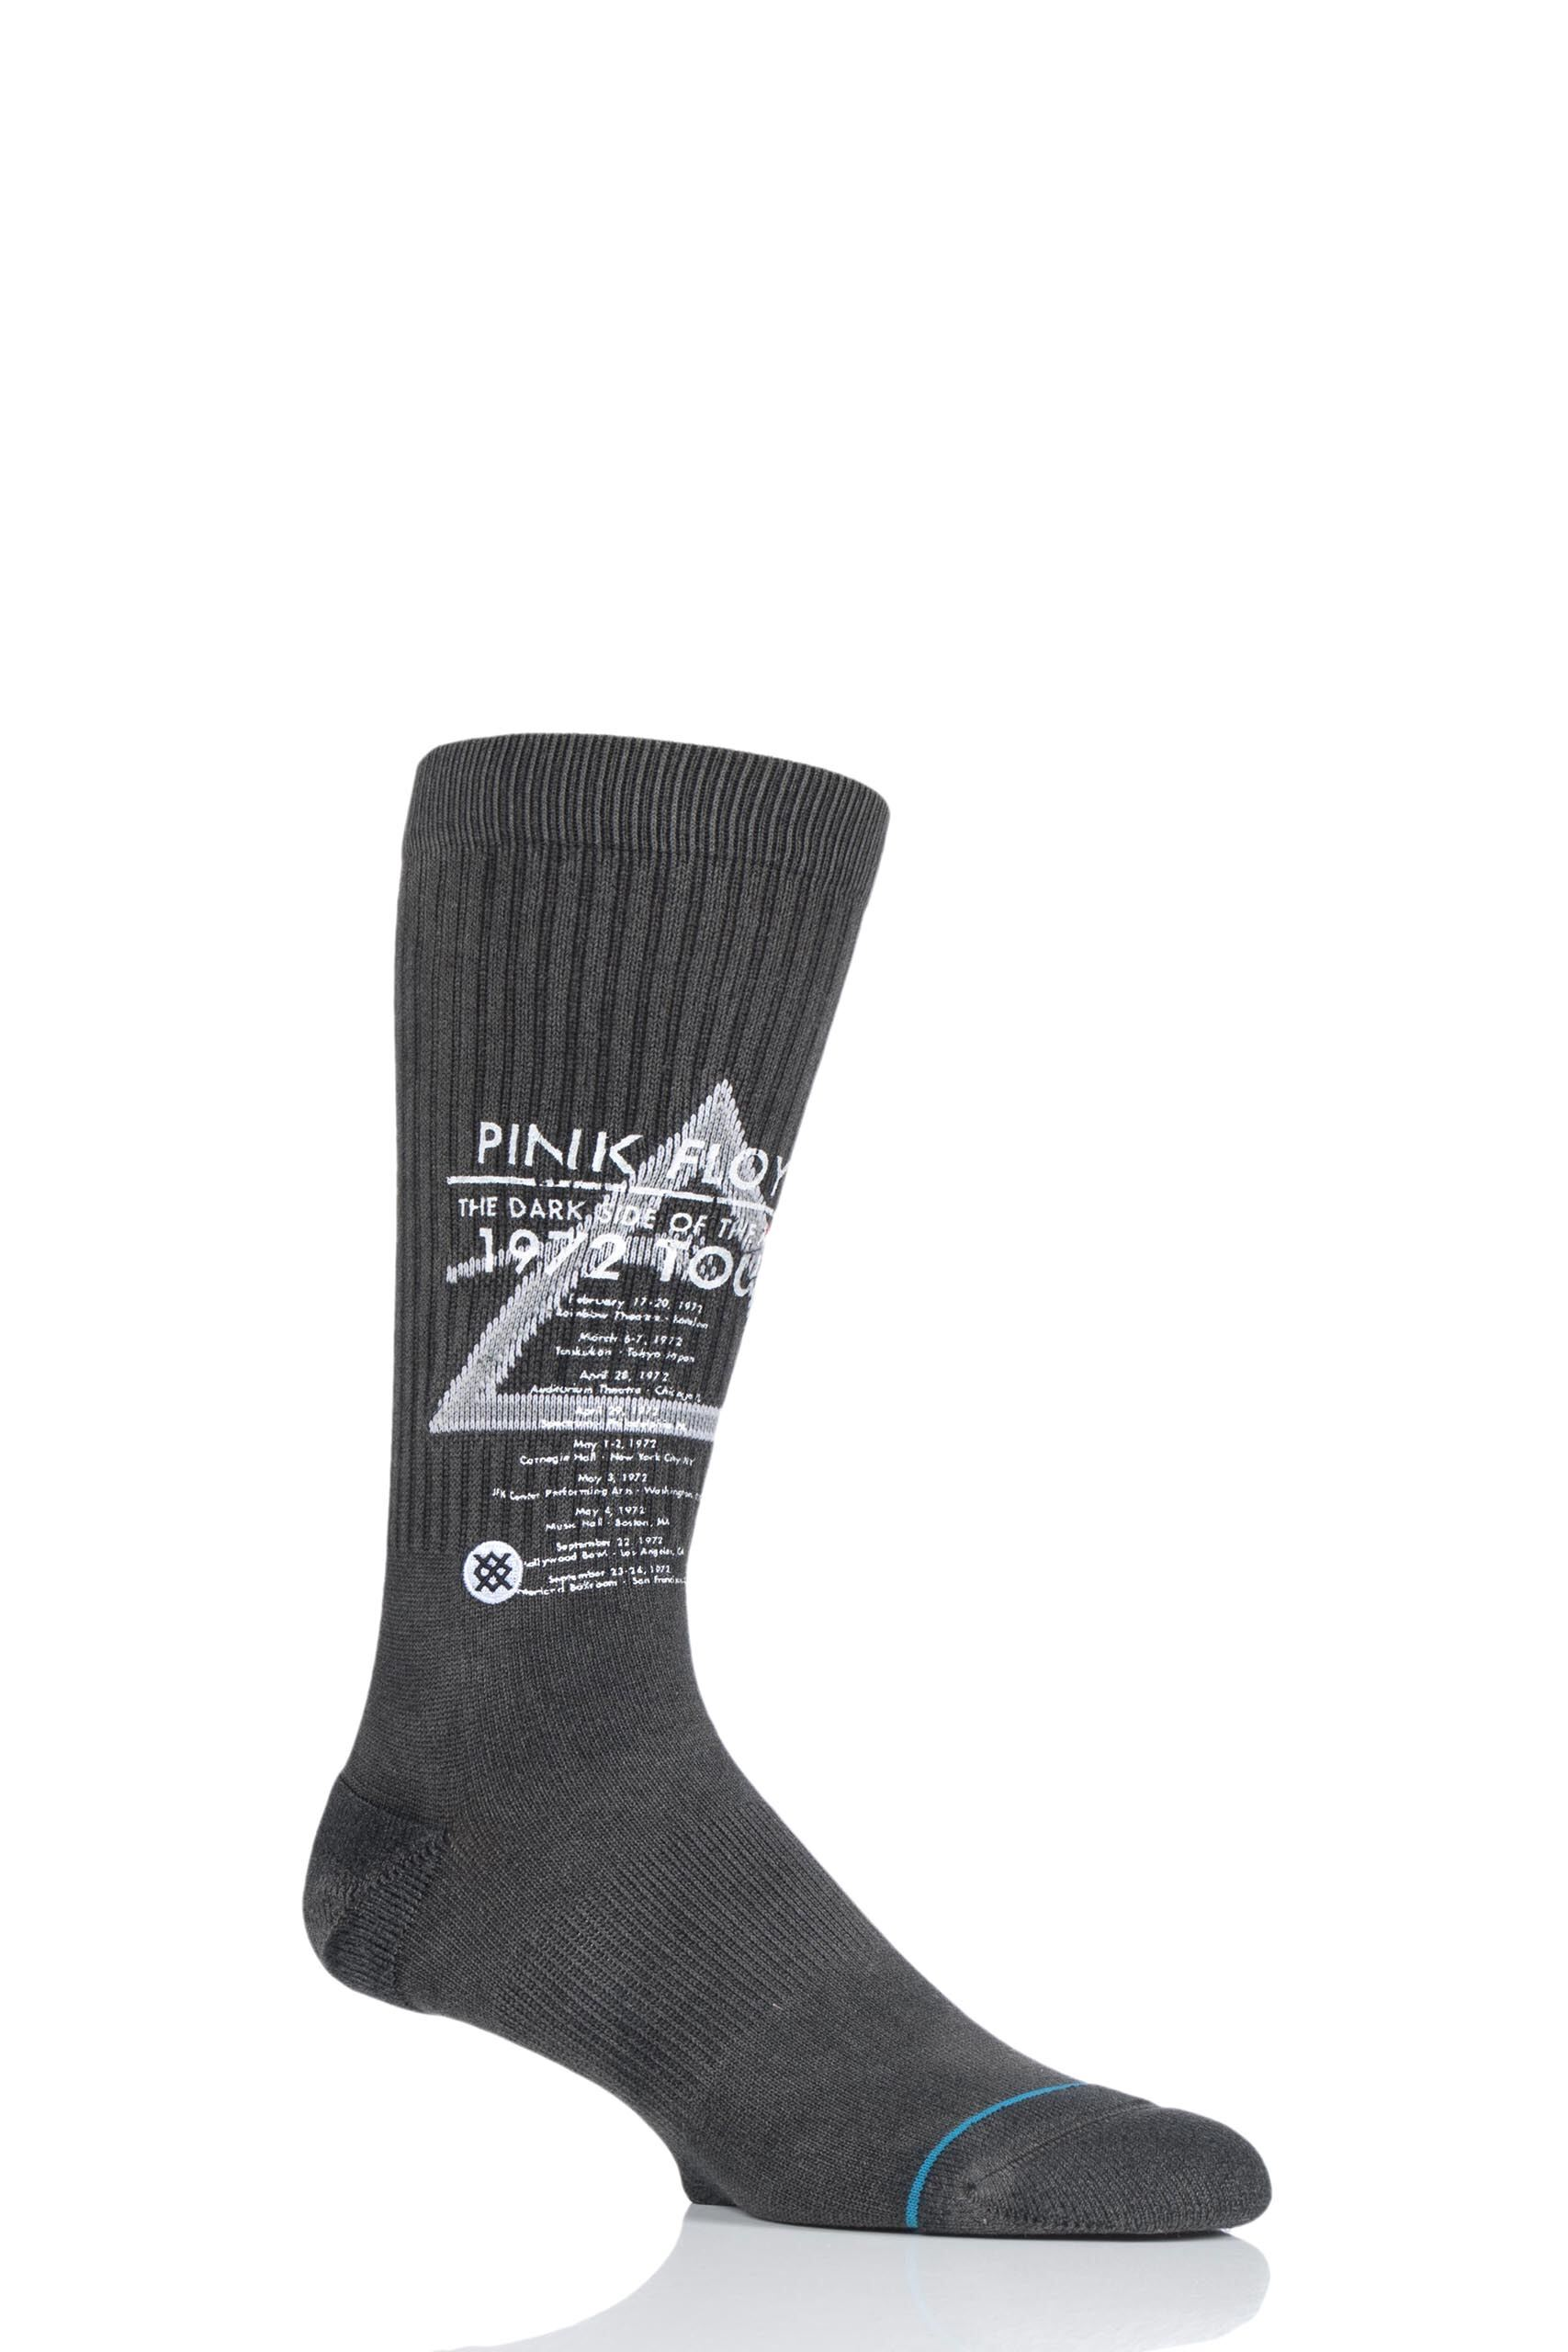 Image of 1 Pair Black Pink Floyd 1972 Tour Cotton Socks Men's 5.5-8 Mens - Stance